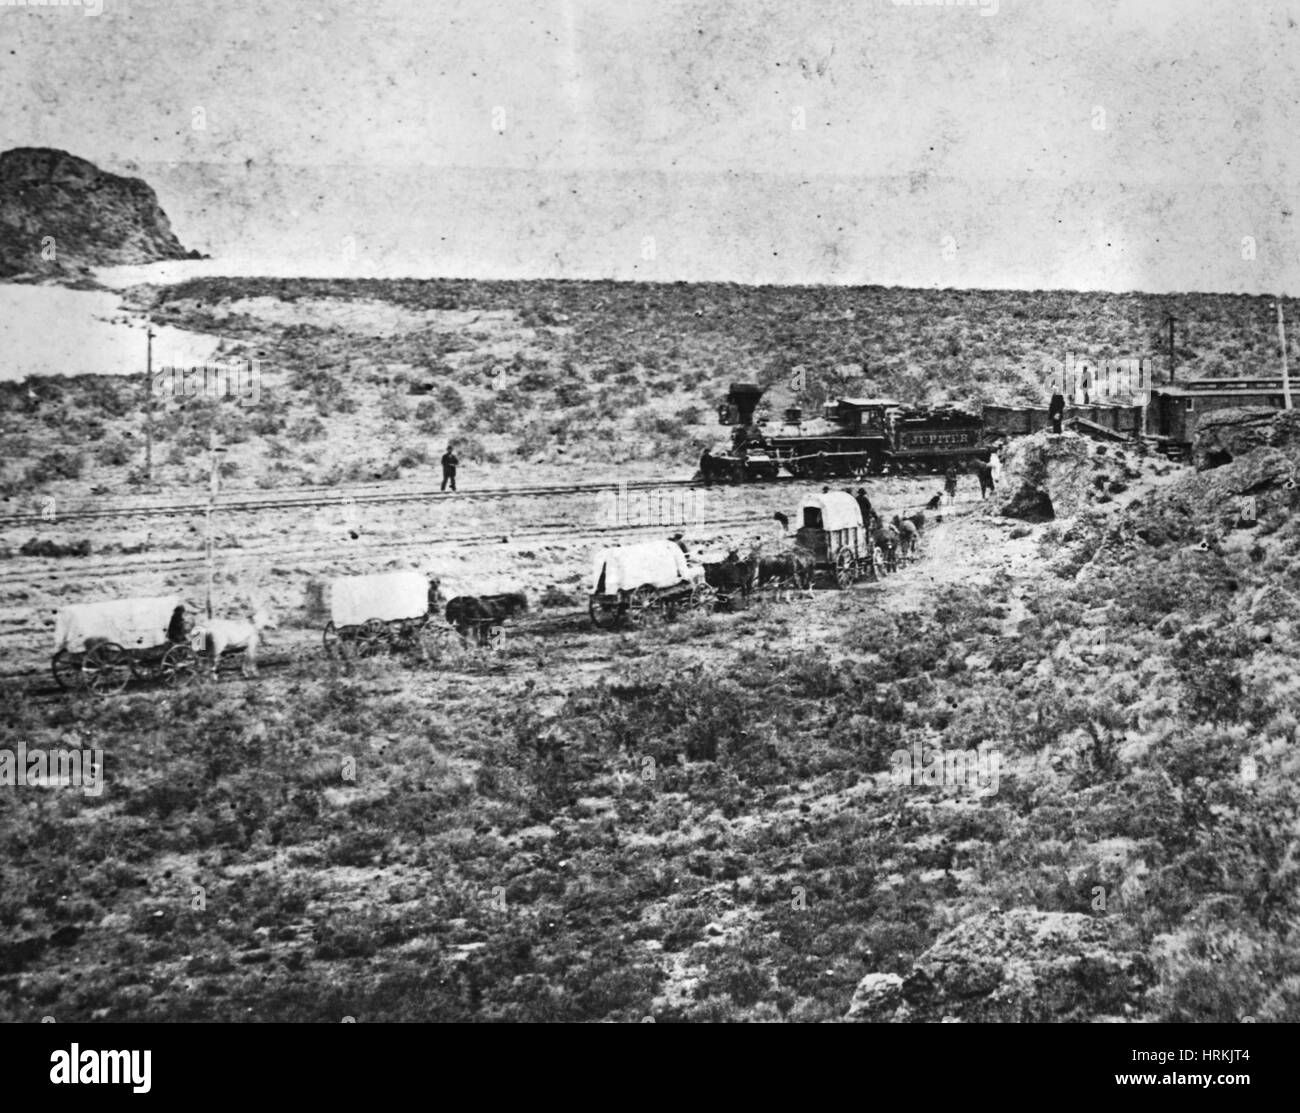 Stanford En Route to Golden Spike Ceremony, 1869 - Stock Image